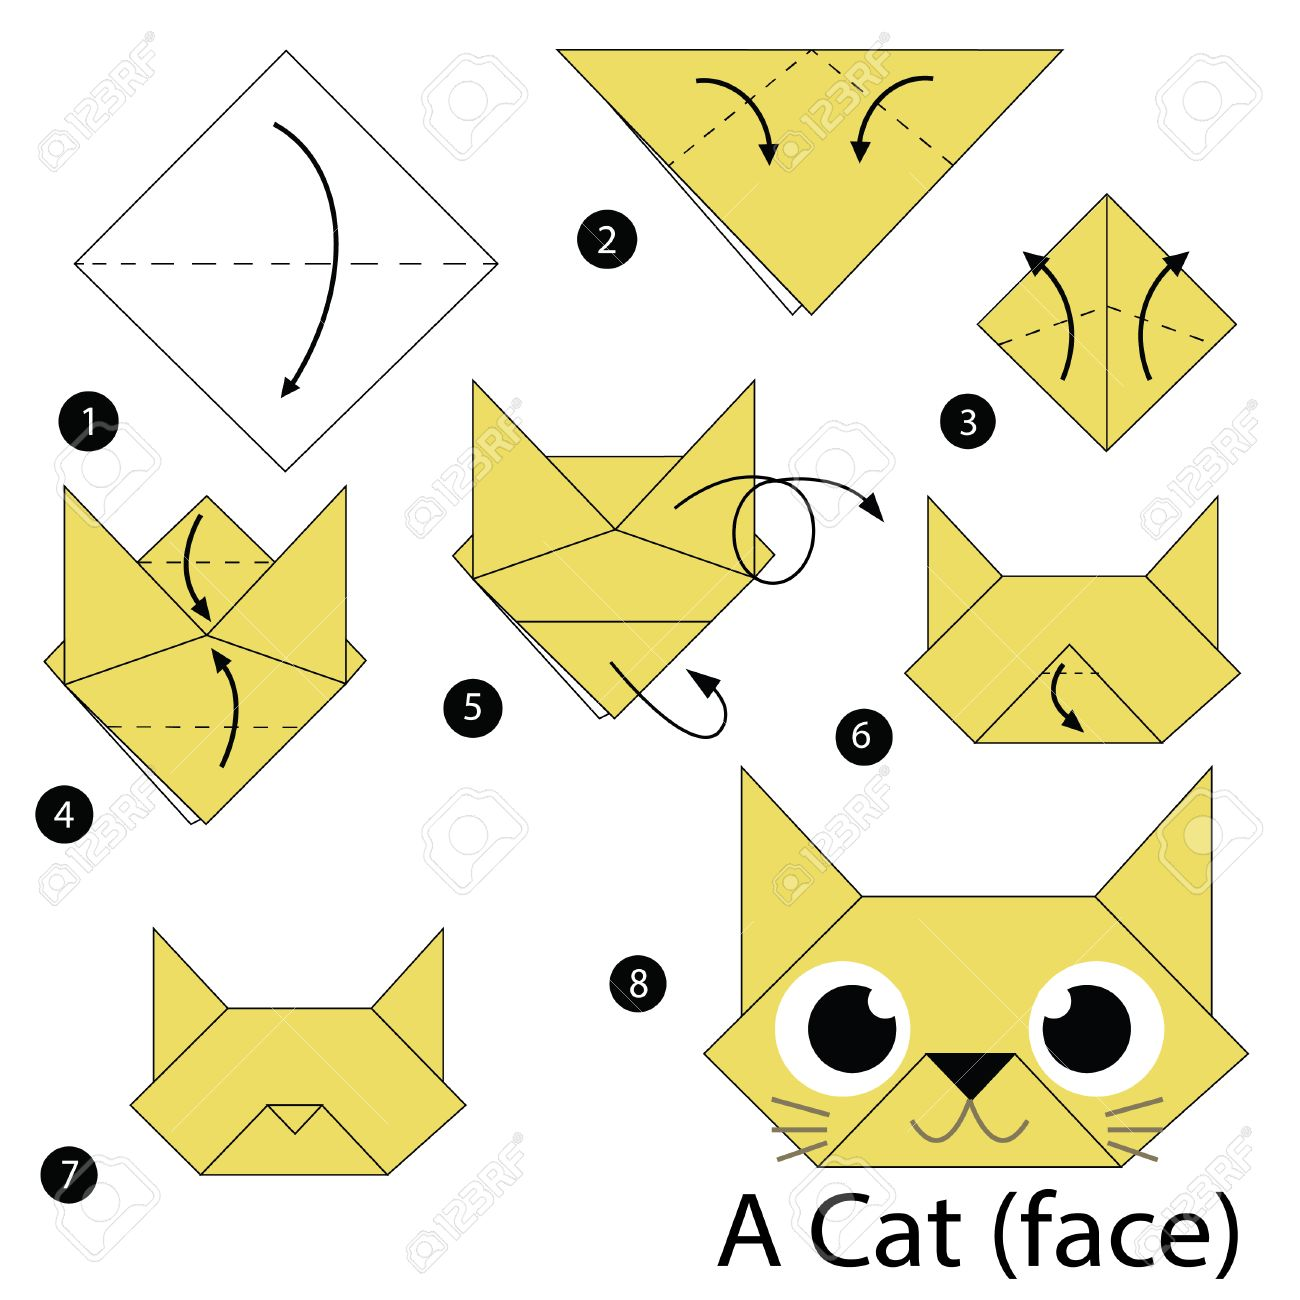 How To Make An Easy Origami Cat Face - Folding Instructions ... | 1300x1300